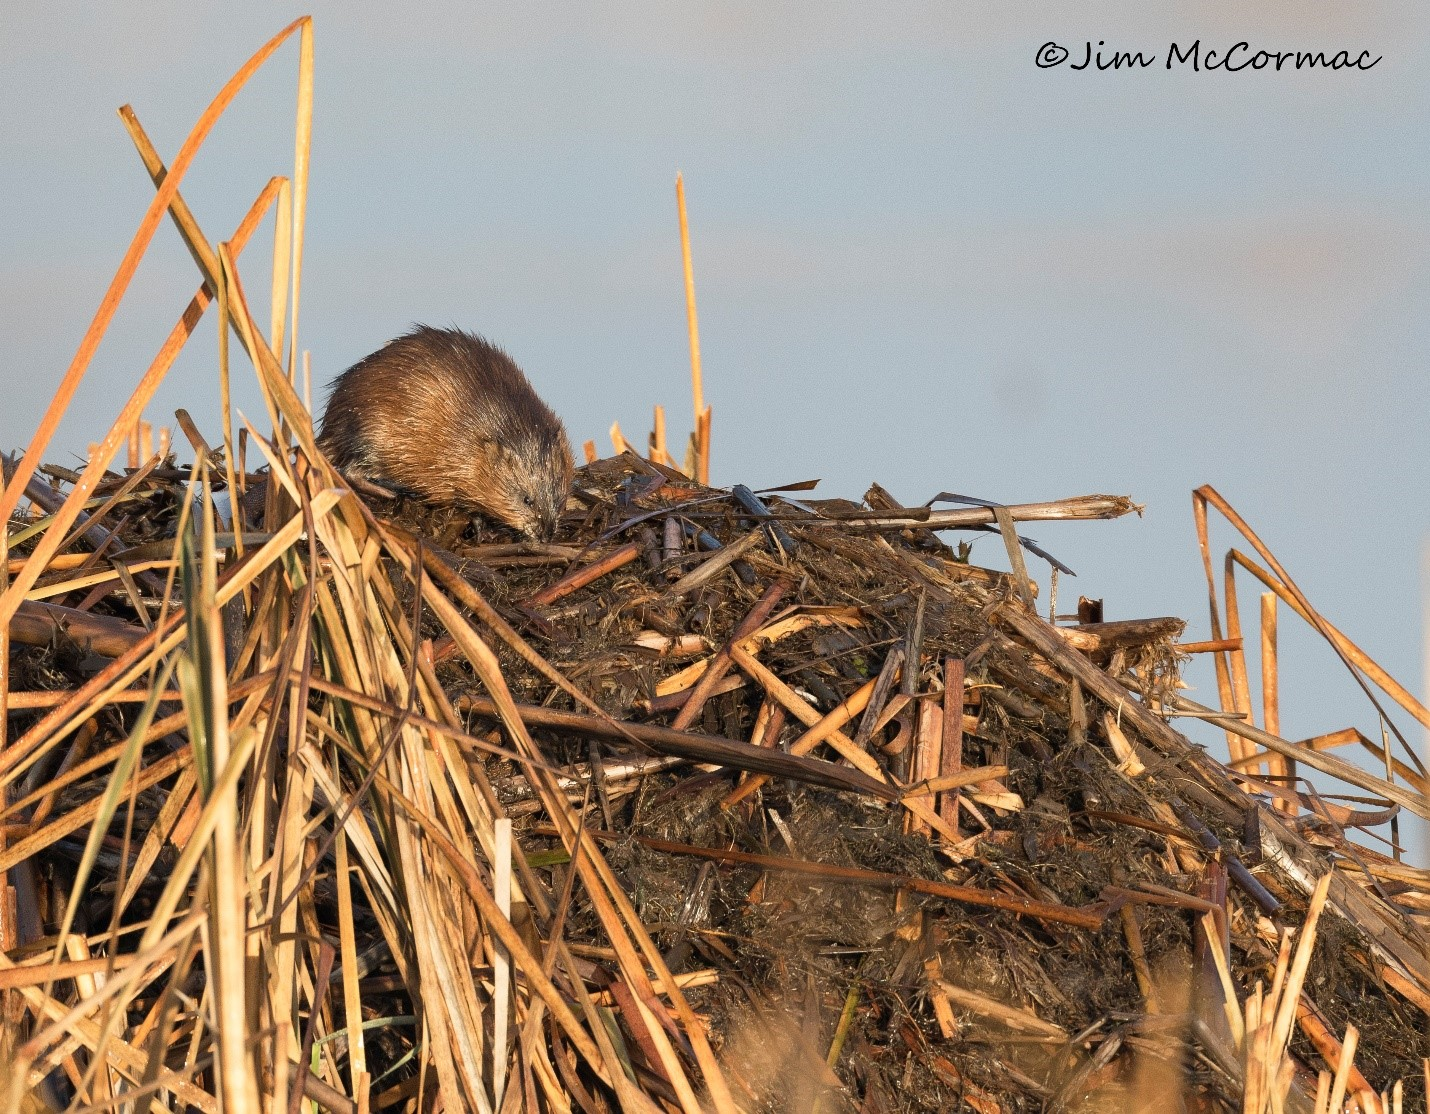 A muskrat atop its conical lodge in the marsh prairie at Battelle Darby Creek.